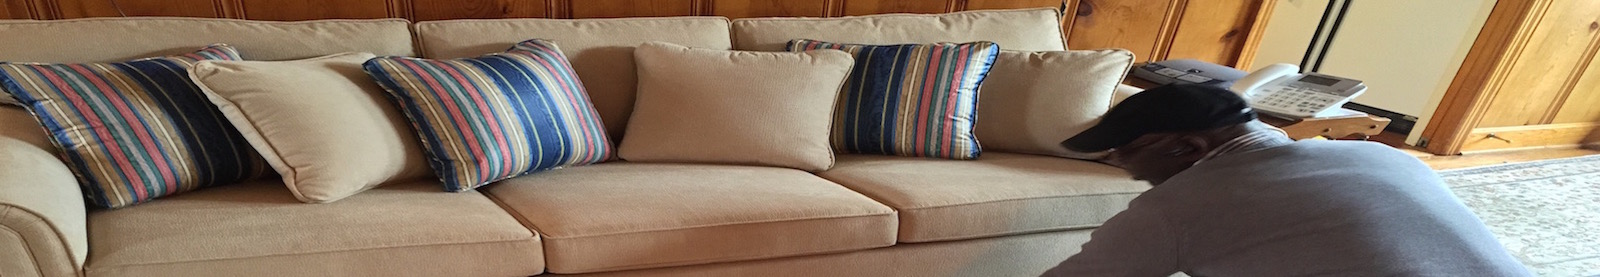 index-custom-upholstery.html